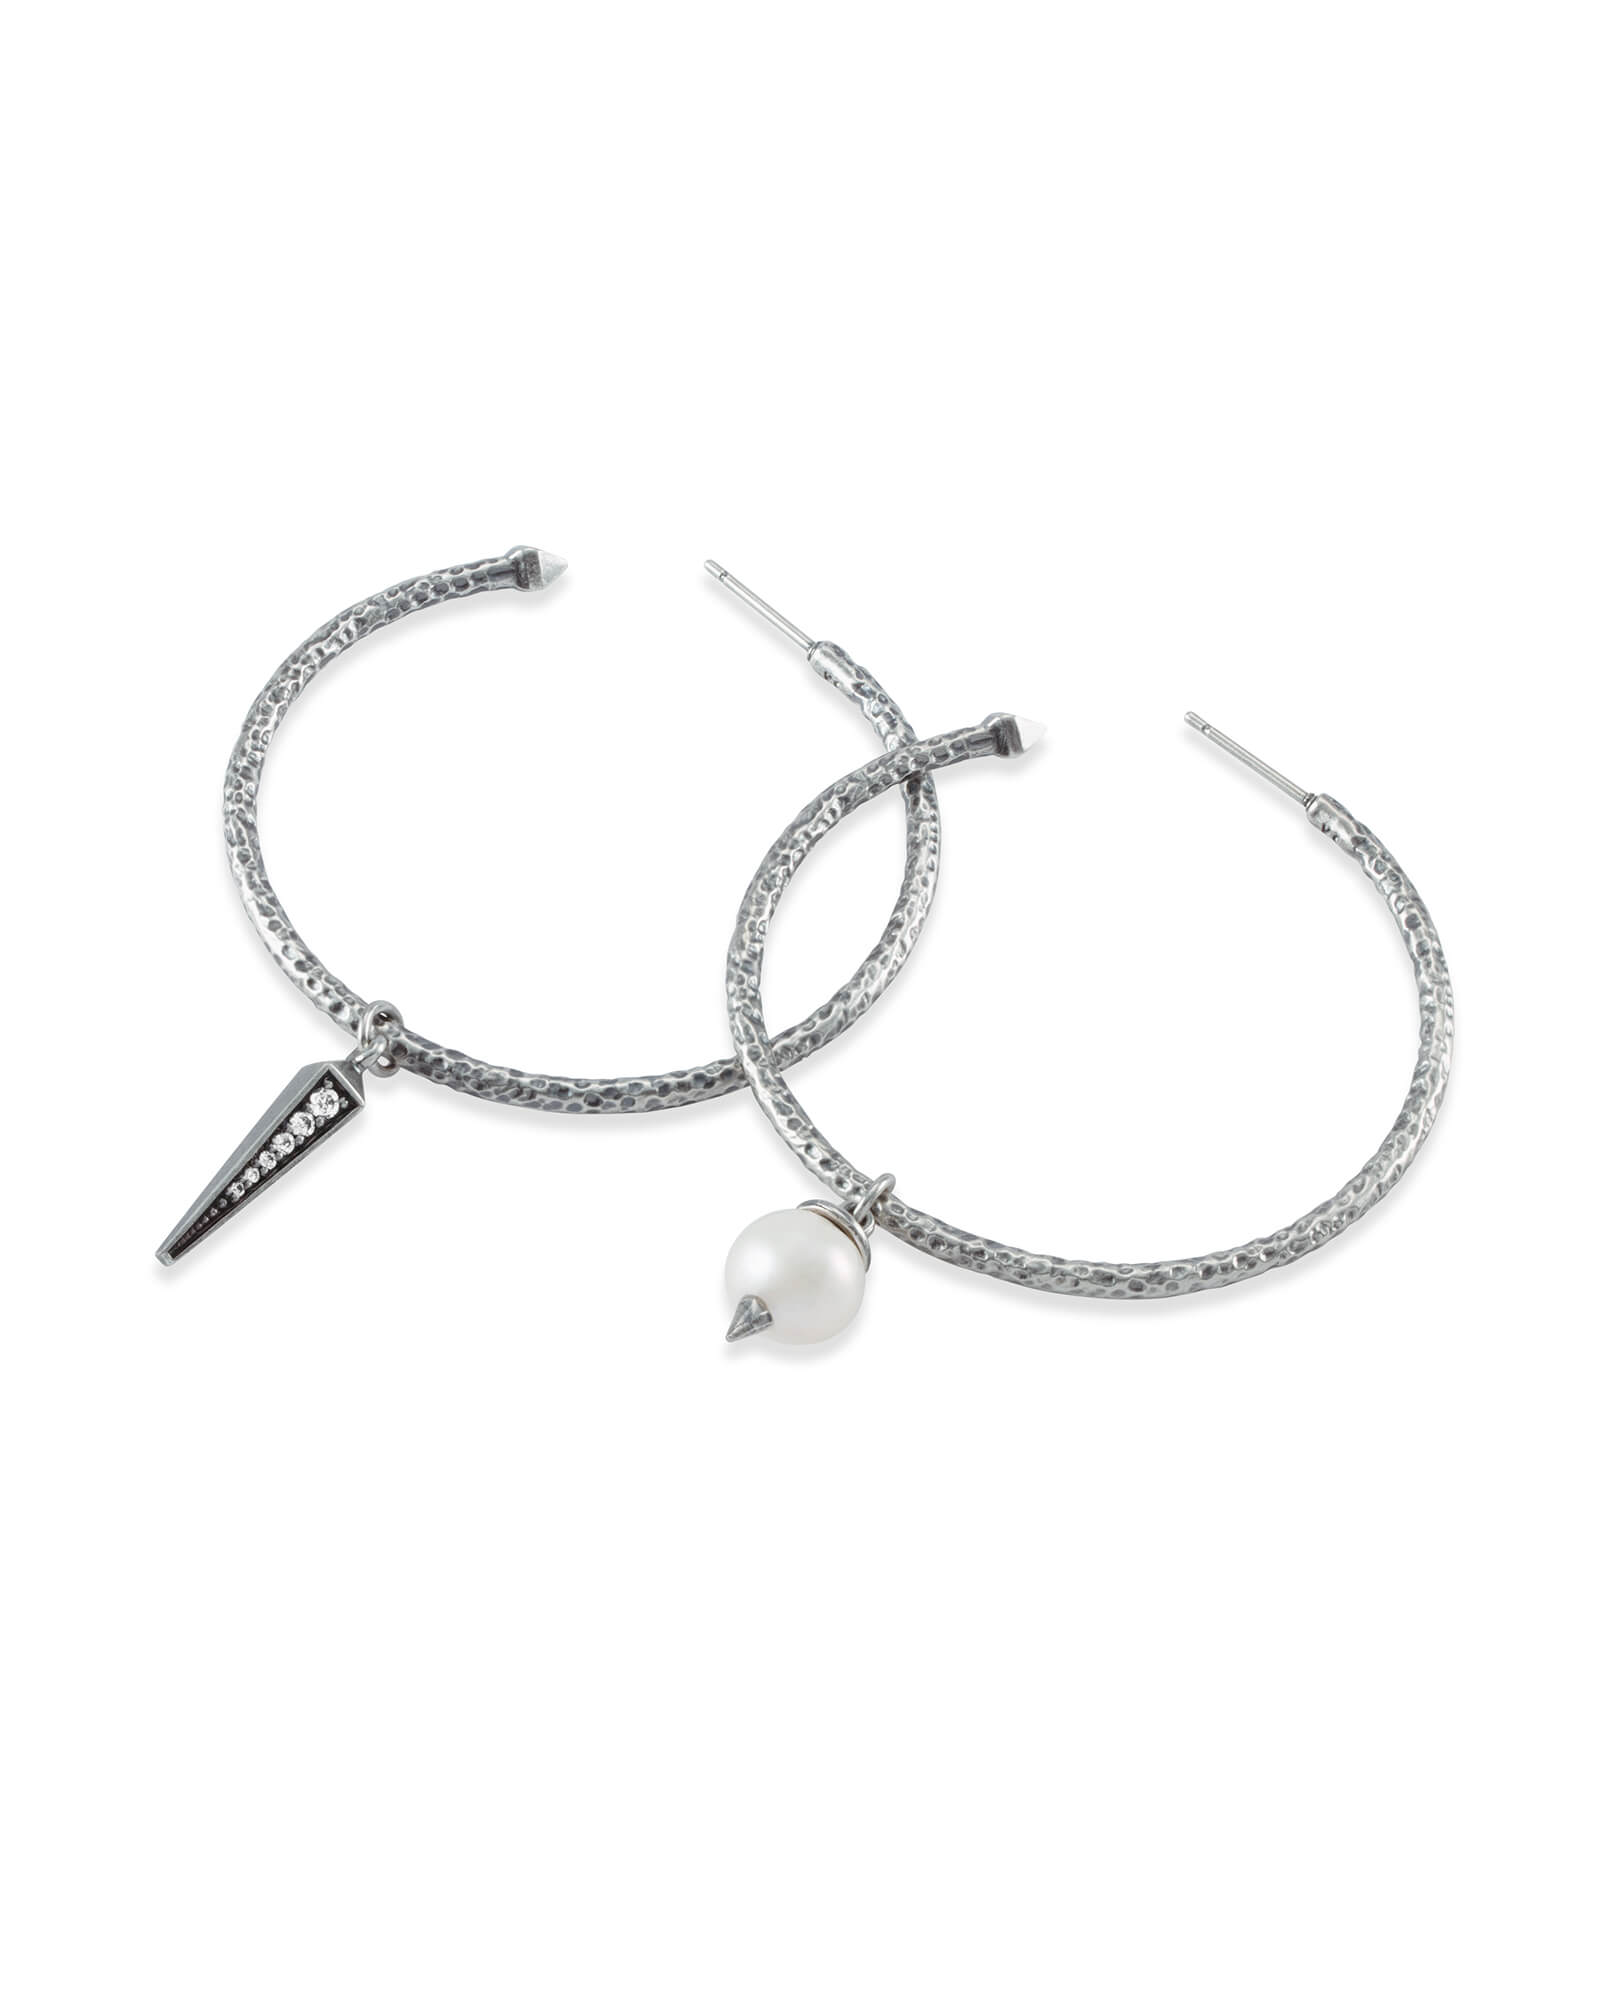 Duality Vintage Silver Charm Earrings Set in White Pearl